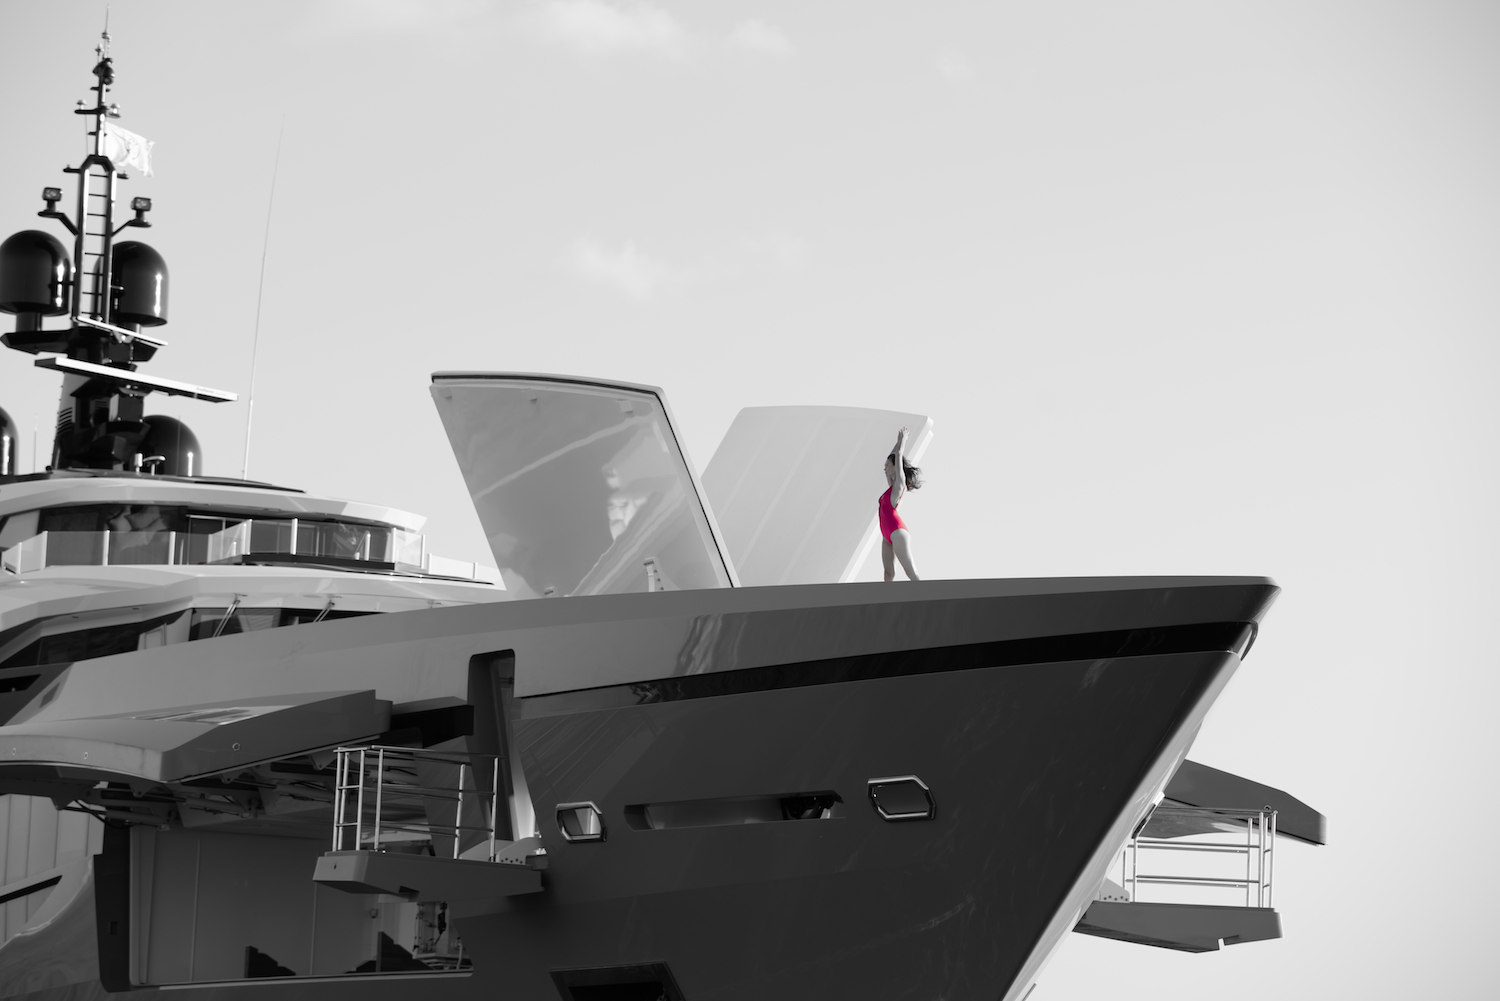 Model On The Bow Of The Yacht